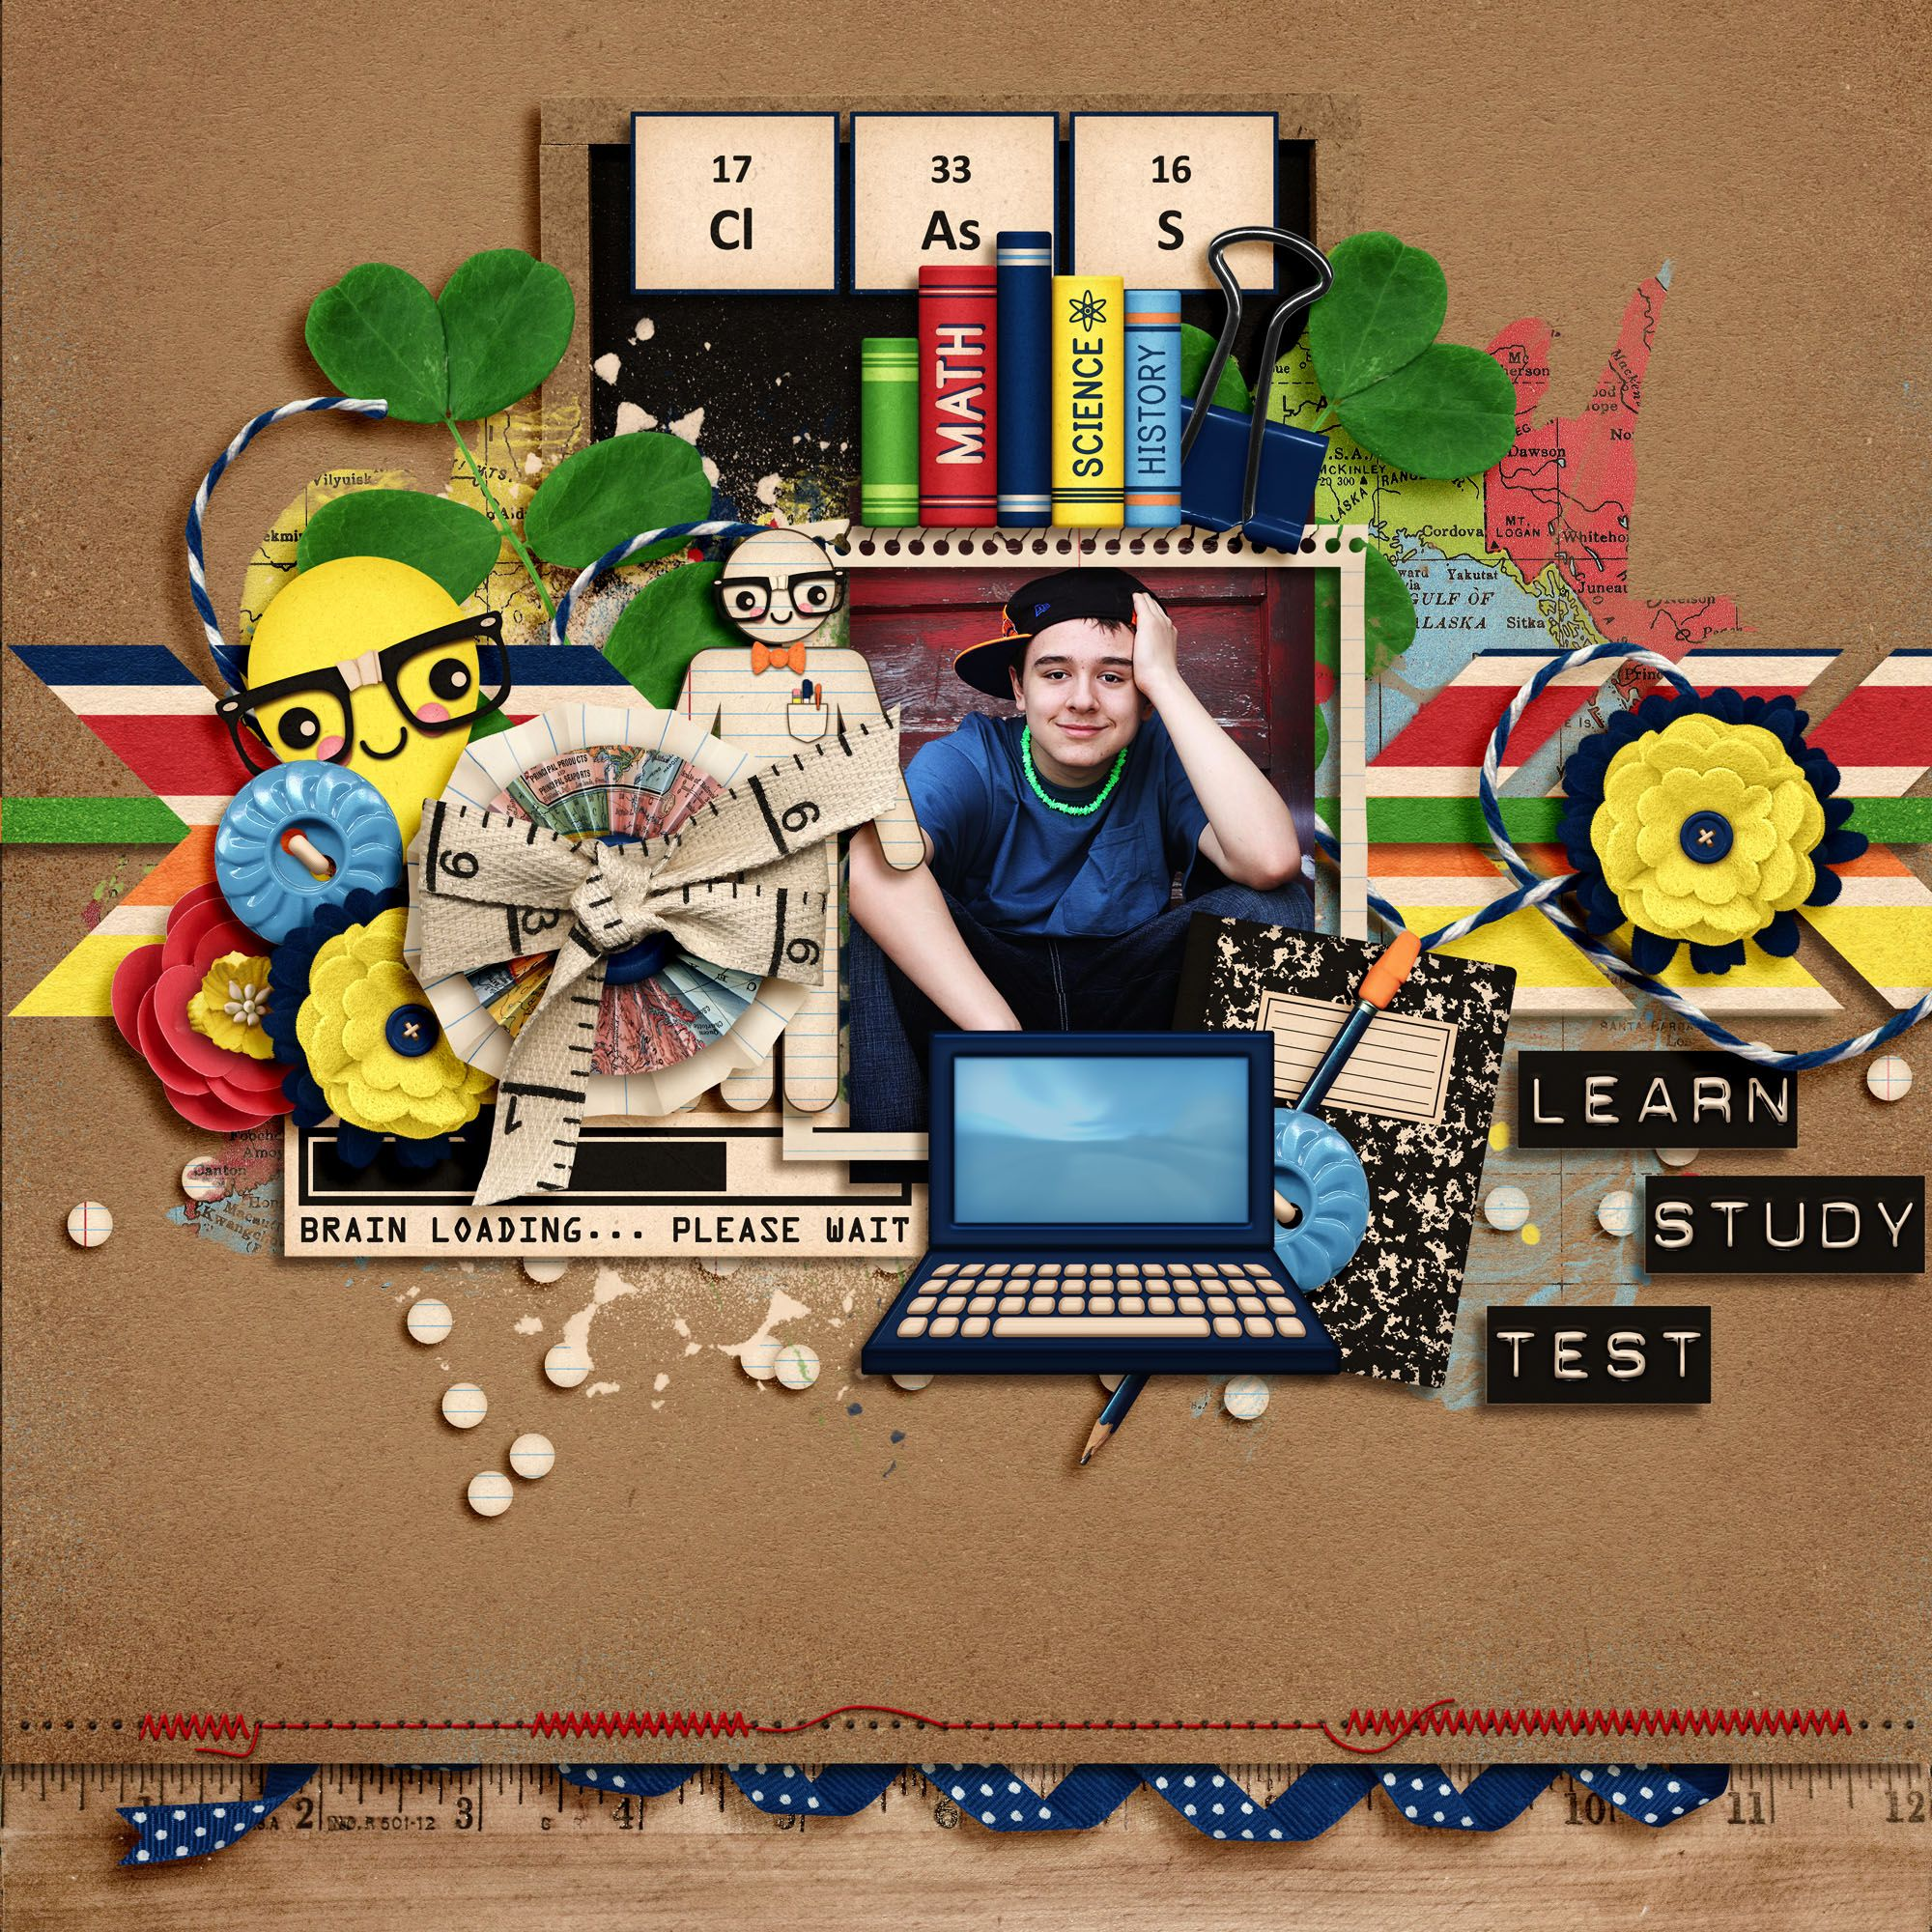 Nerd Alert by Kristin Aagard Designs Retired Template by Crystal Livesay Designs Bad Sewing Machine Stitches by Traci Reed